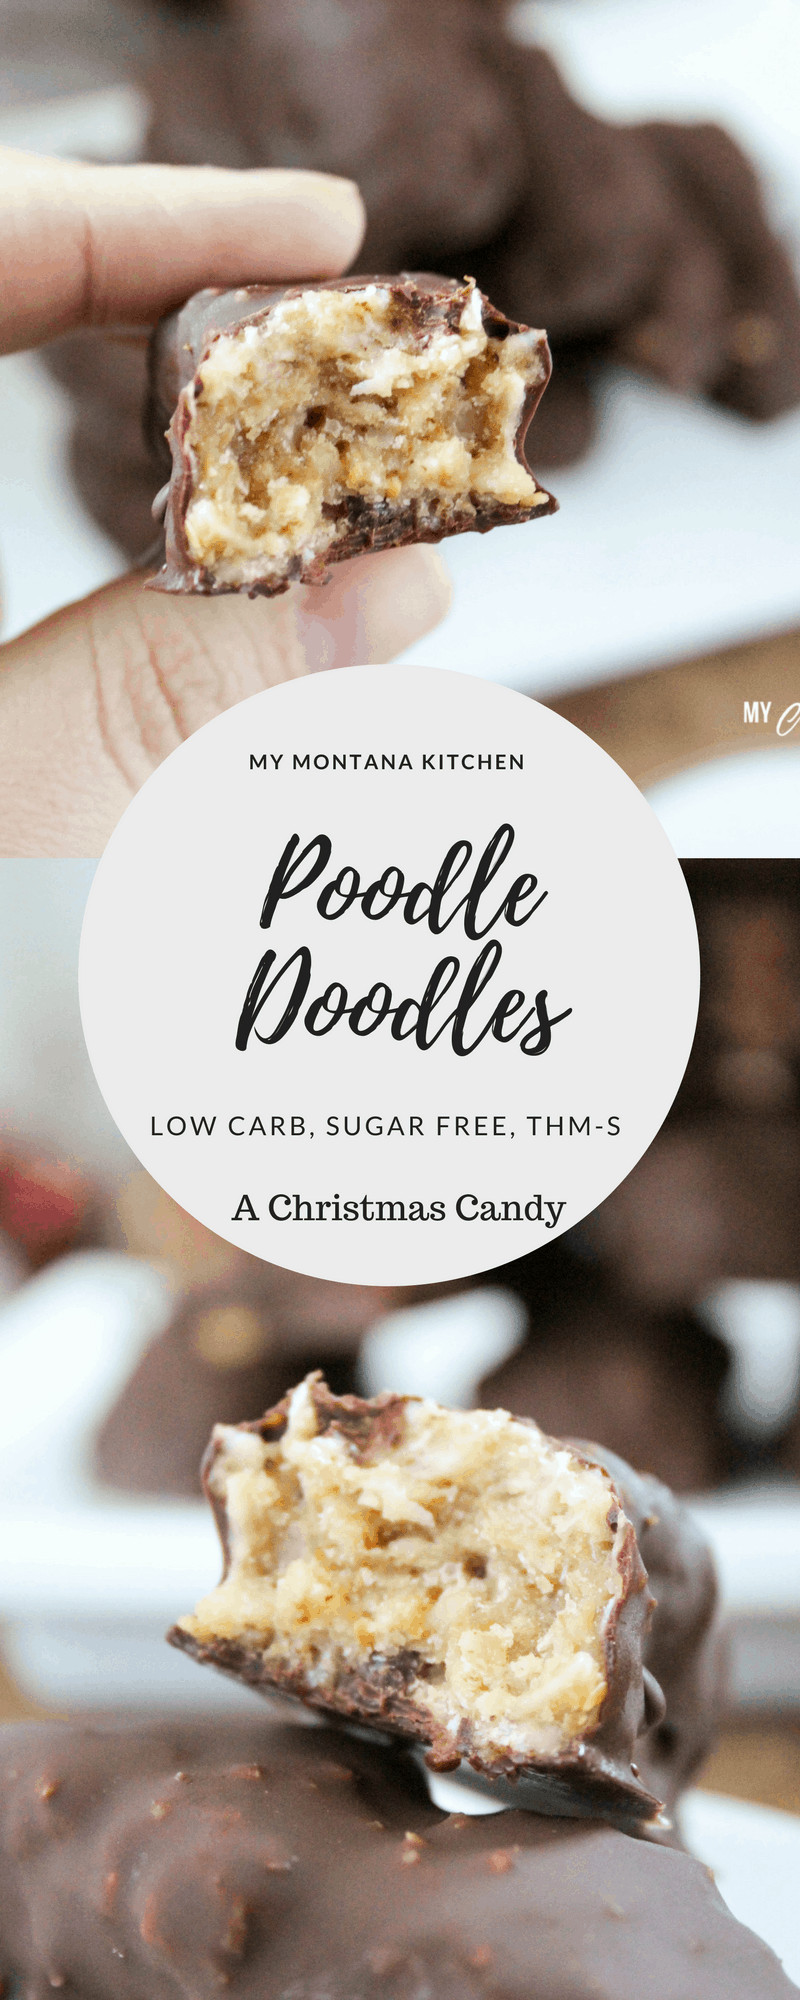 Sugar Free Christmas Candy  Poodle Doodles